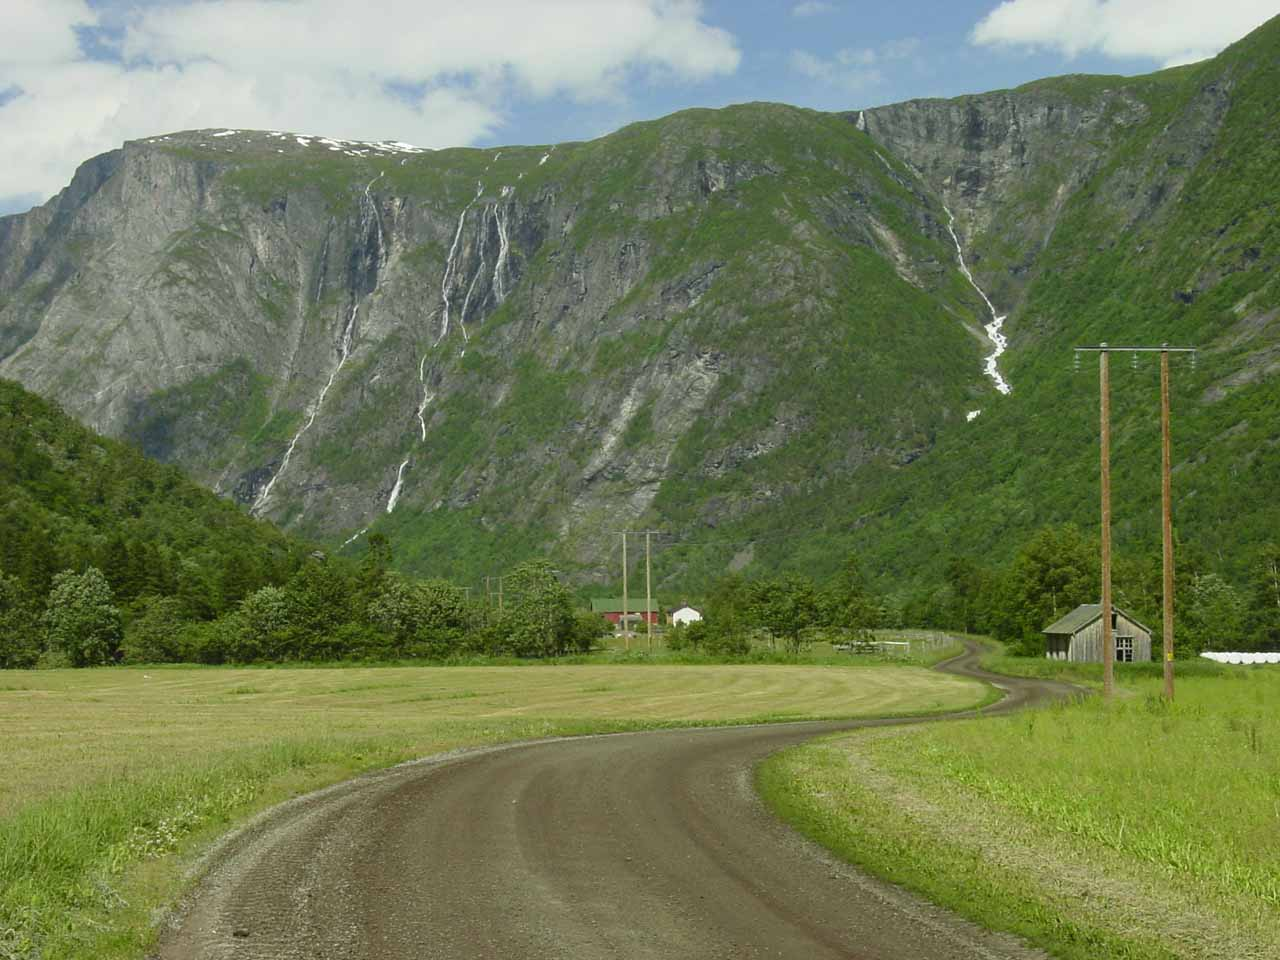 Looking back on the unpaved local road 191 towards the series of thin waterfalls on the east wall of Eikesdalen (possibly on the brook Almelibekken or the stream Rangåa